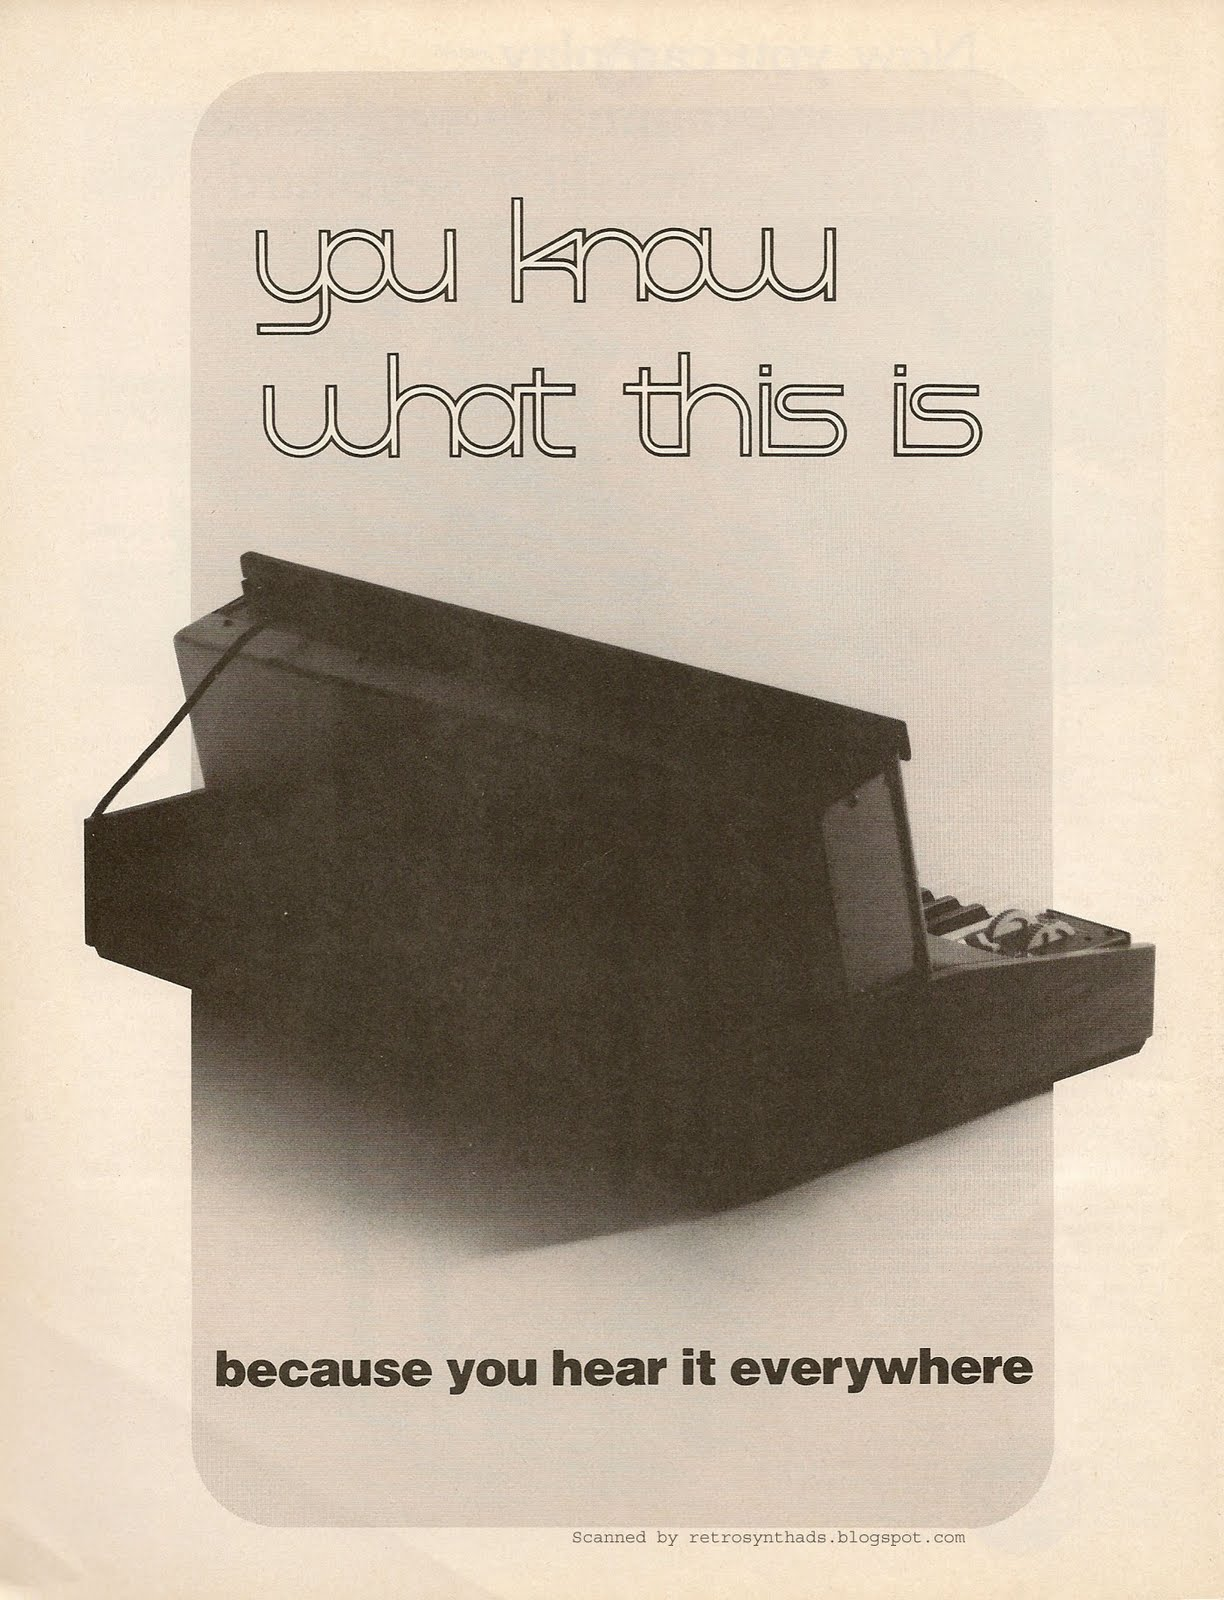 http://retrosynthads.blogspot.ca/2012/10/moog-minimoog-you-know-what-this-is.html